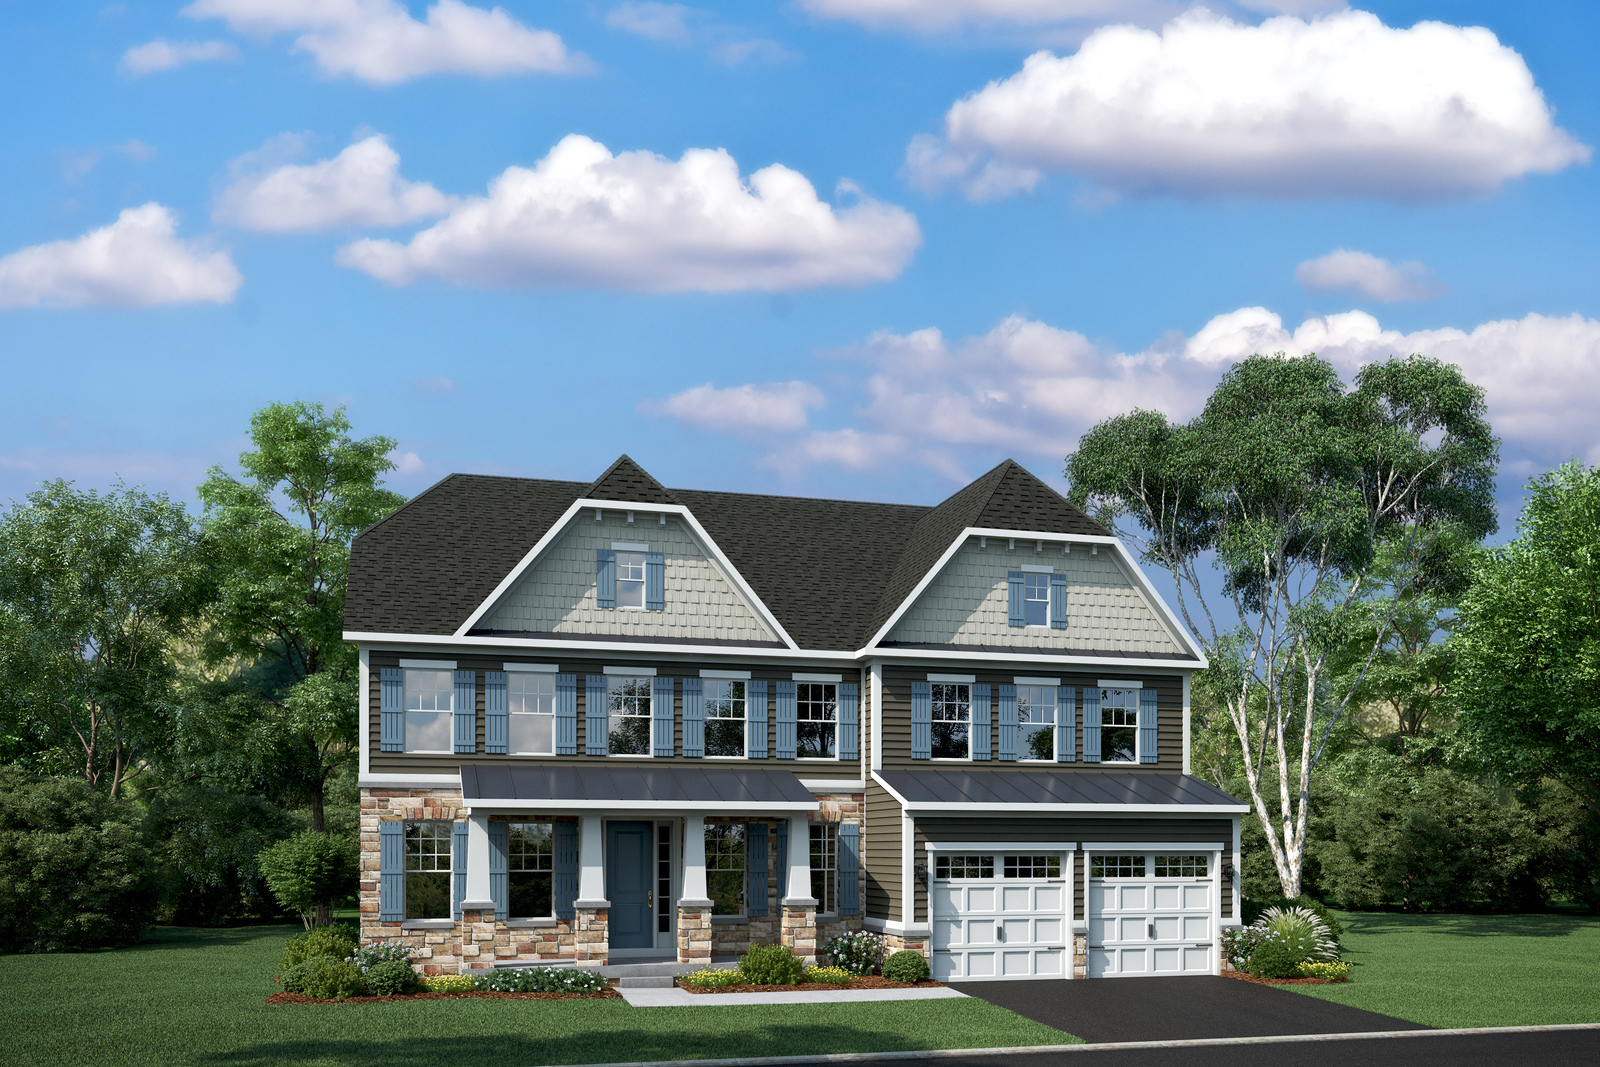 New stratford hall home model for sale heartland homes for Heartland homes pittsburgh floor plans